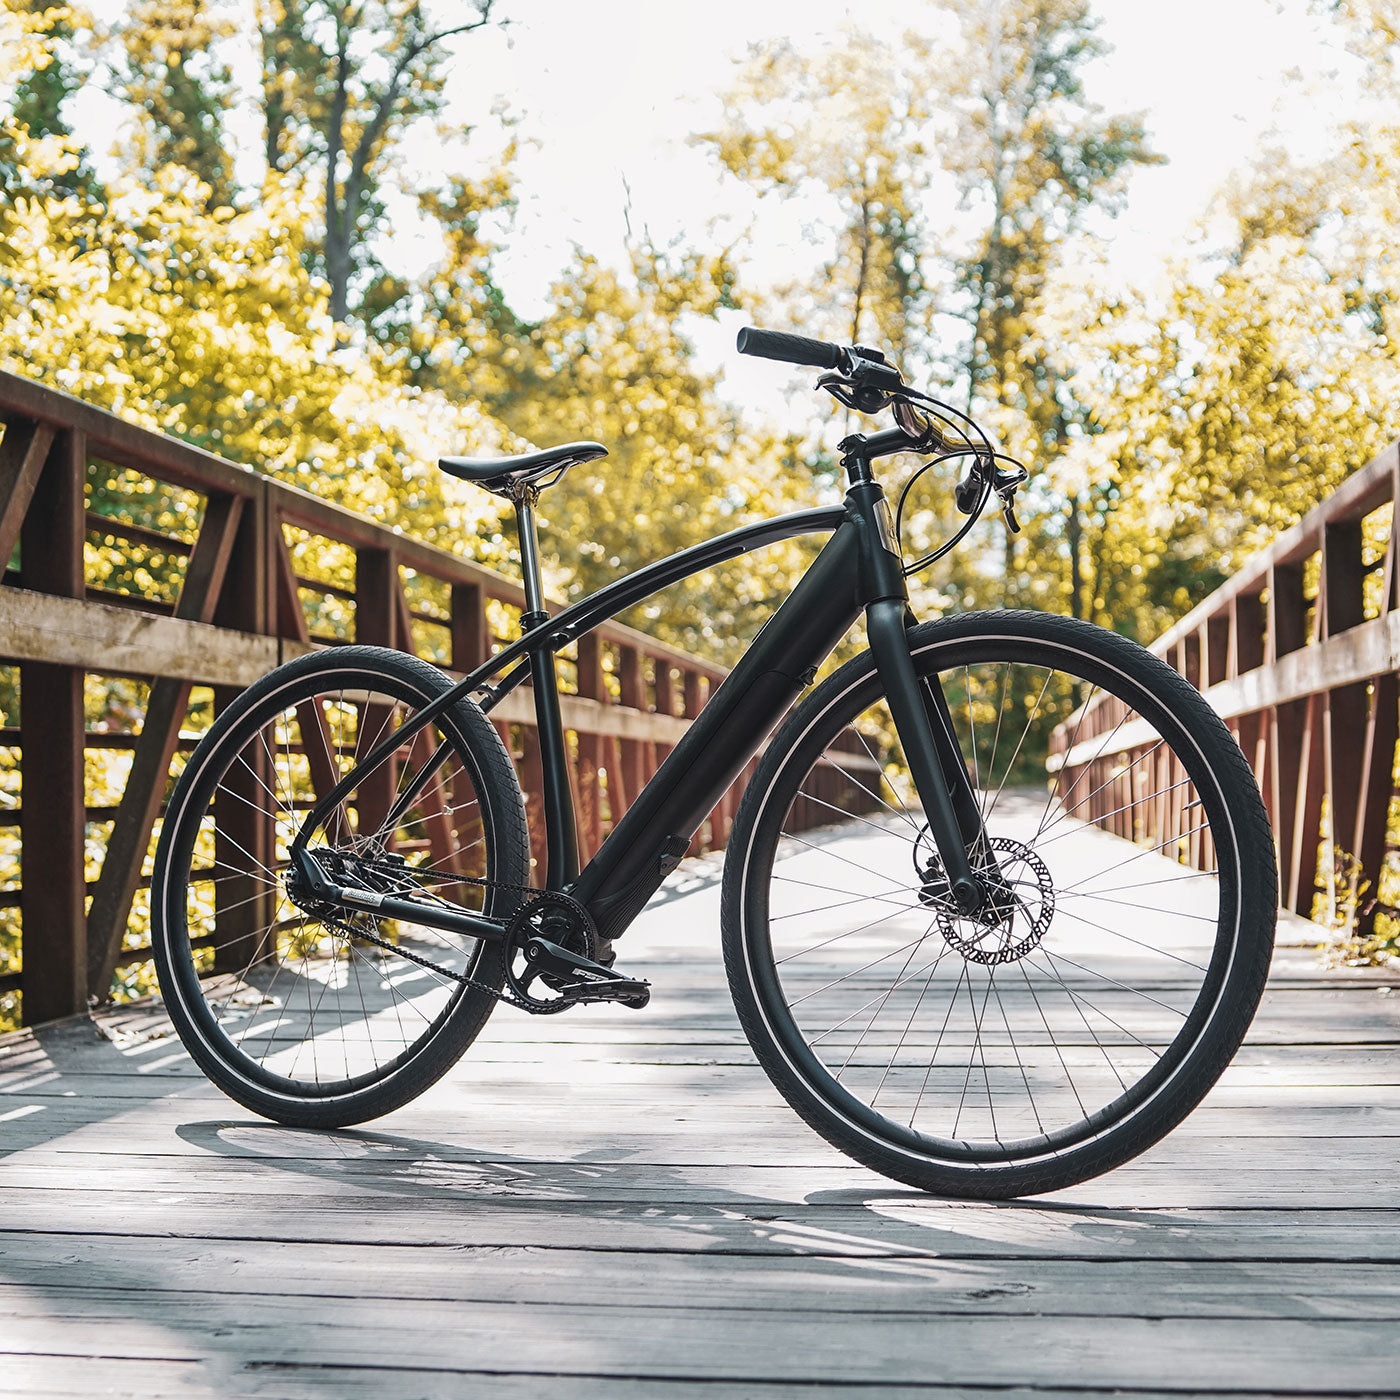 The Budnitz Bicycles Model E electric bicycle